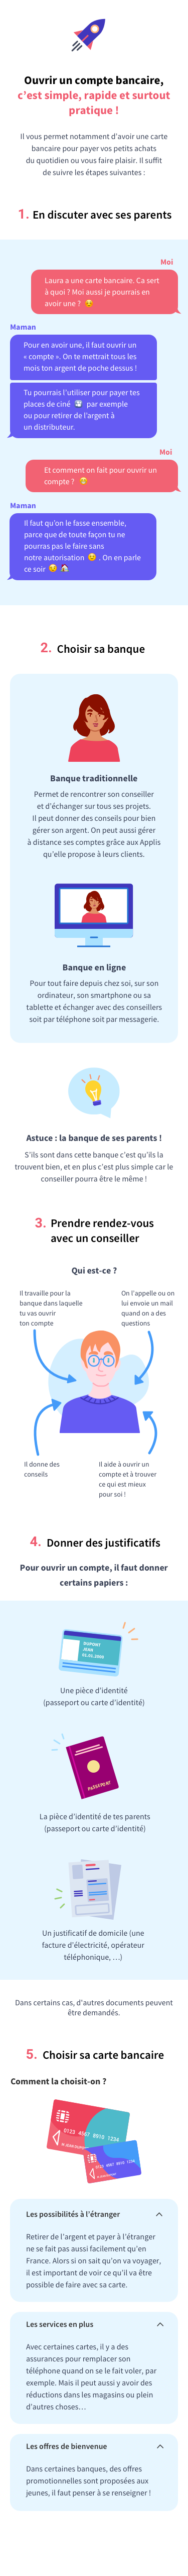 1_sg_infographie_creation_compte_bancaire_mobile_ouvert.png